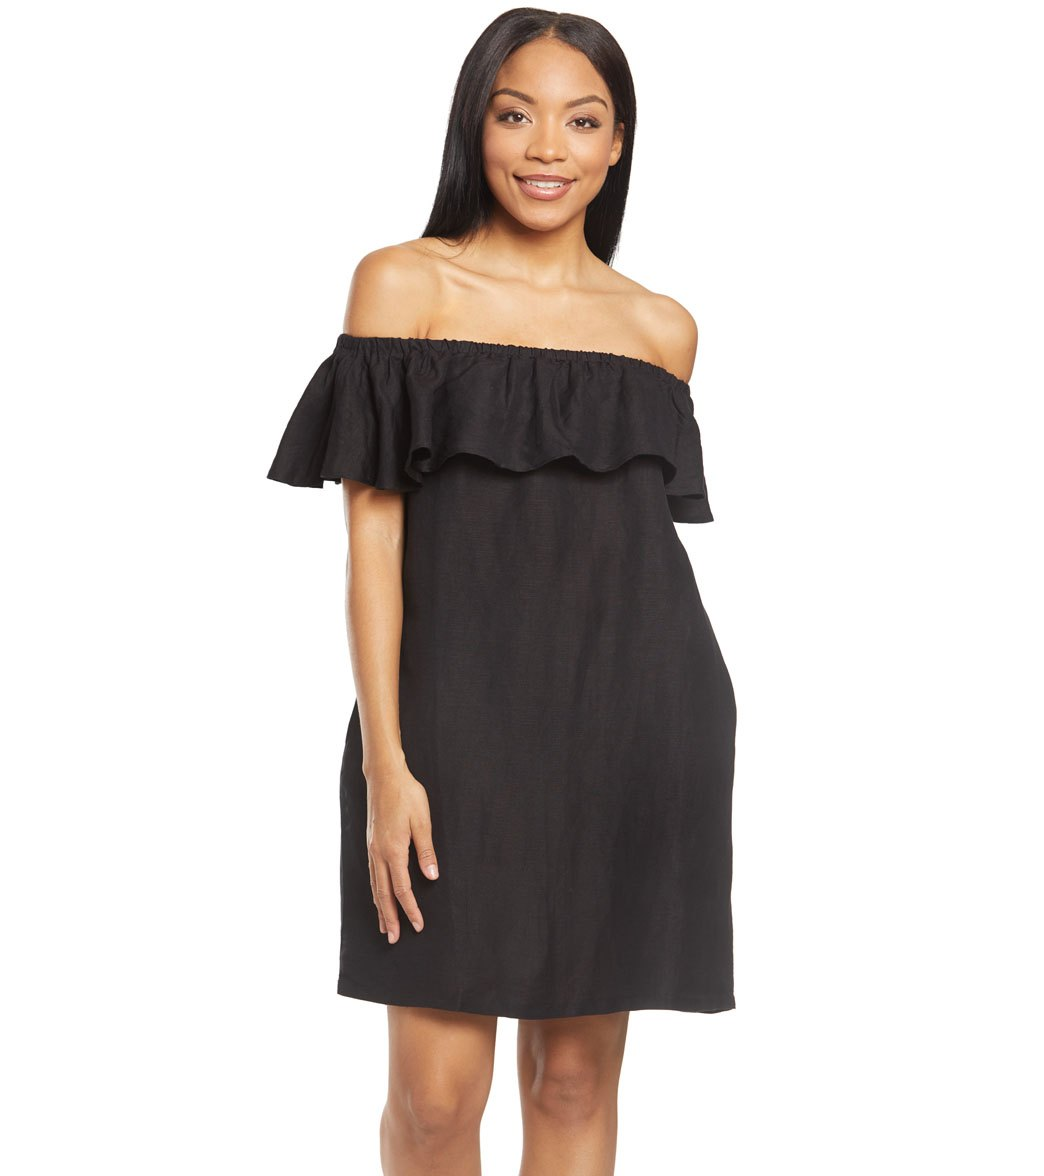 587b81d4a3 Tommy Bahama Off The Shoulder Cover Up Dress at SwimOutlet.com - Free  Shipping